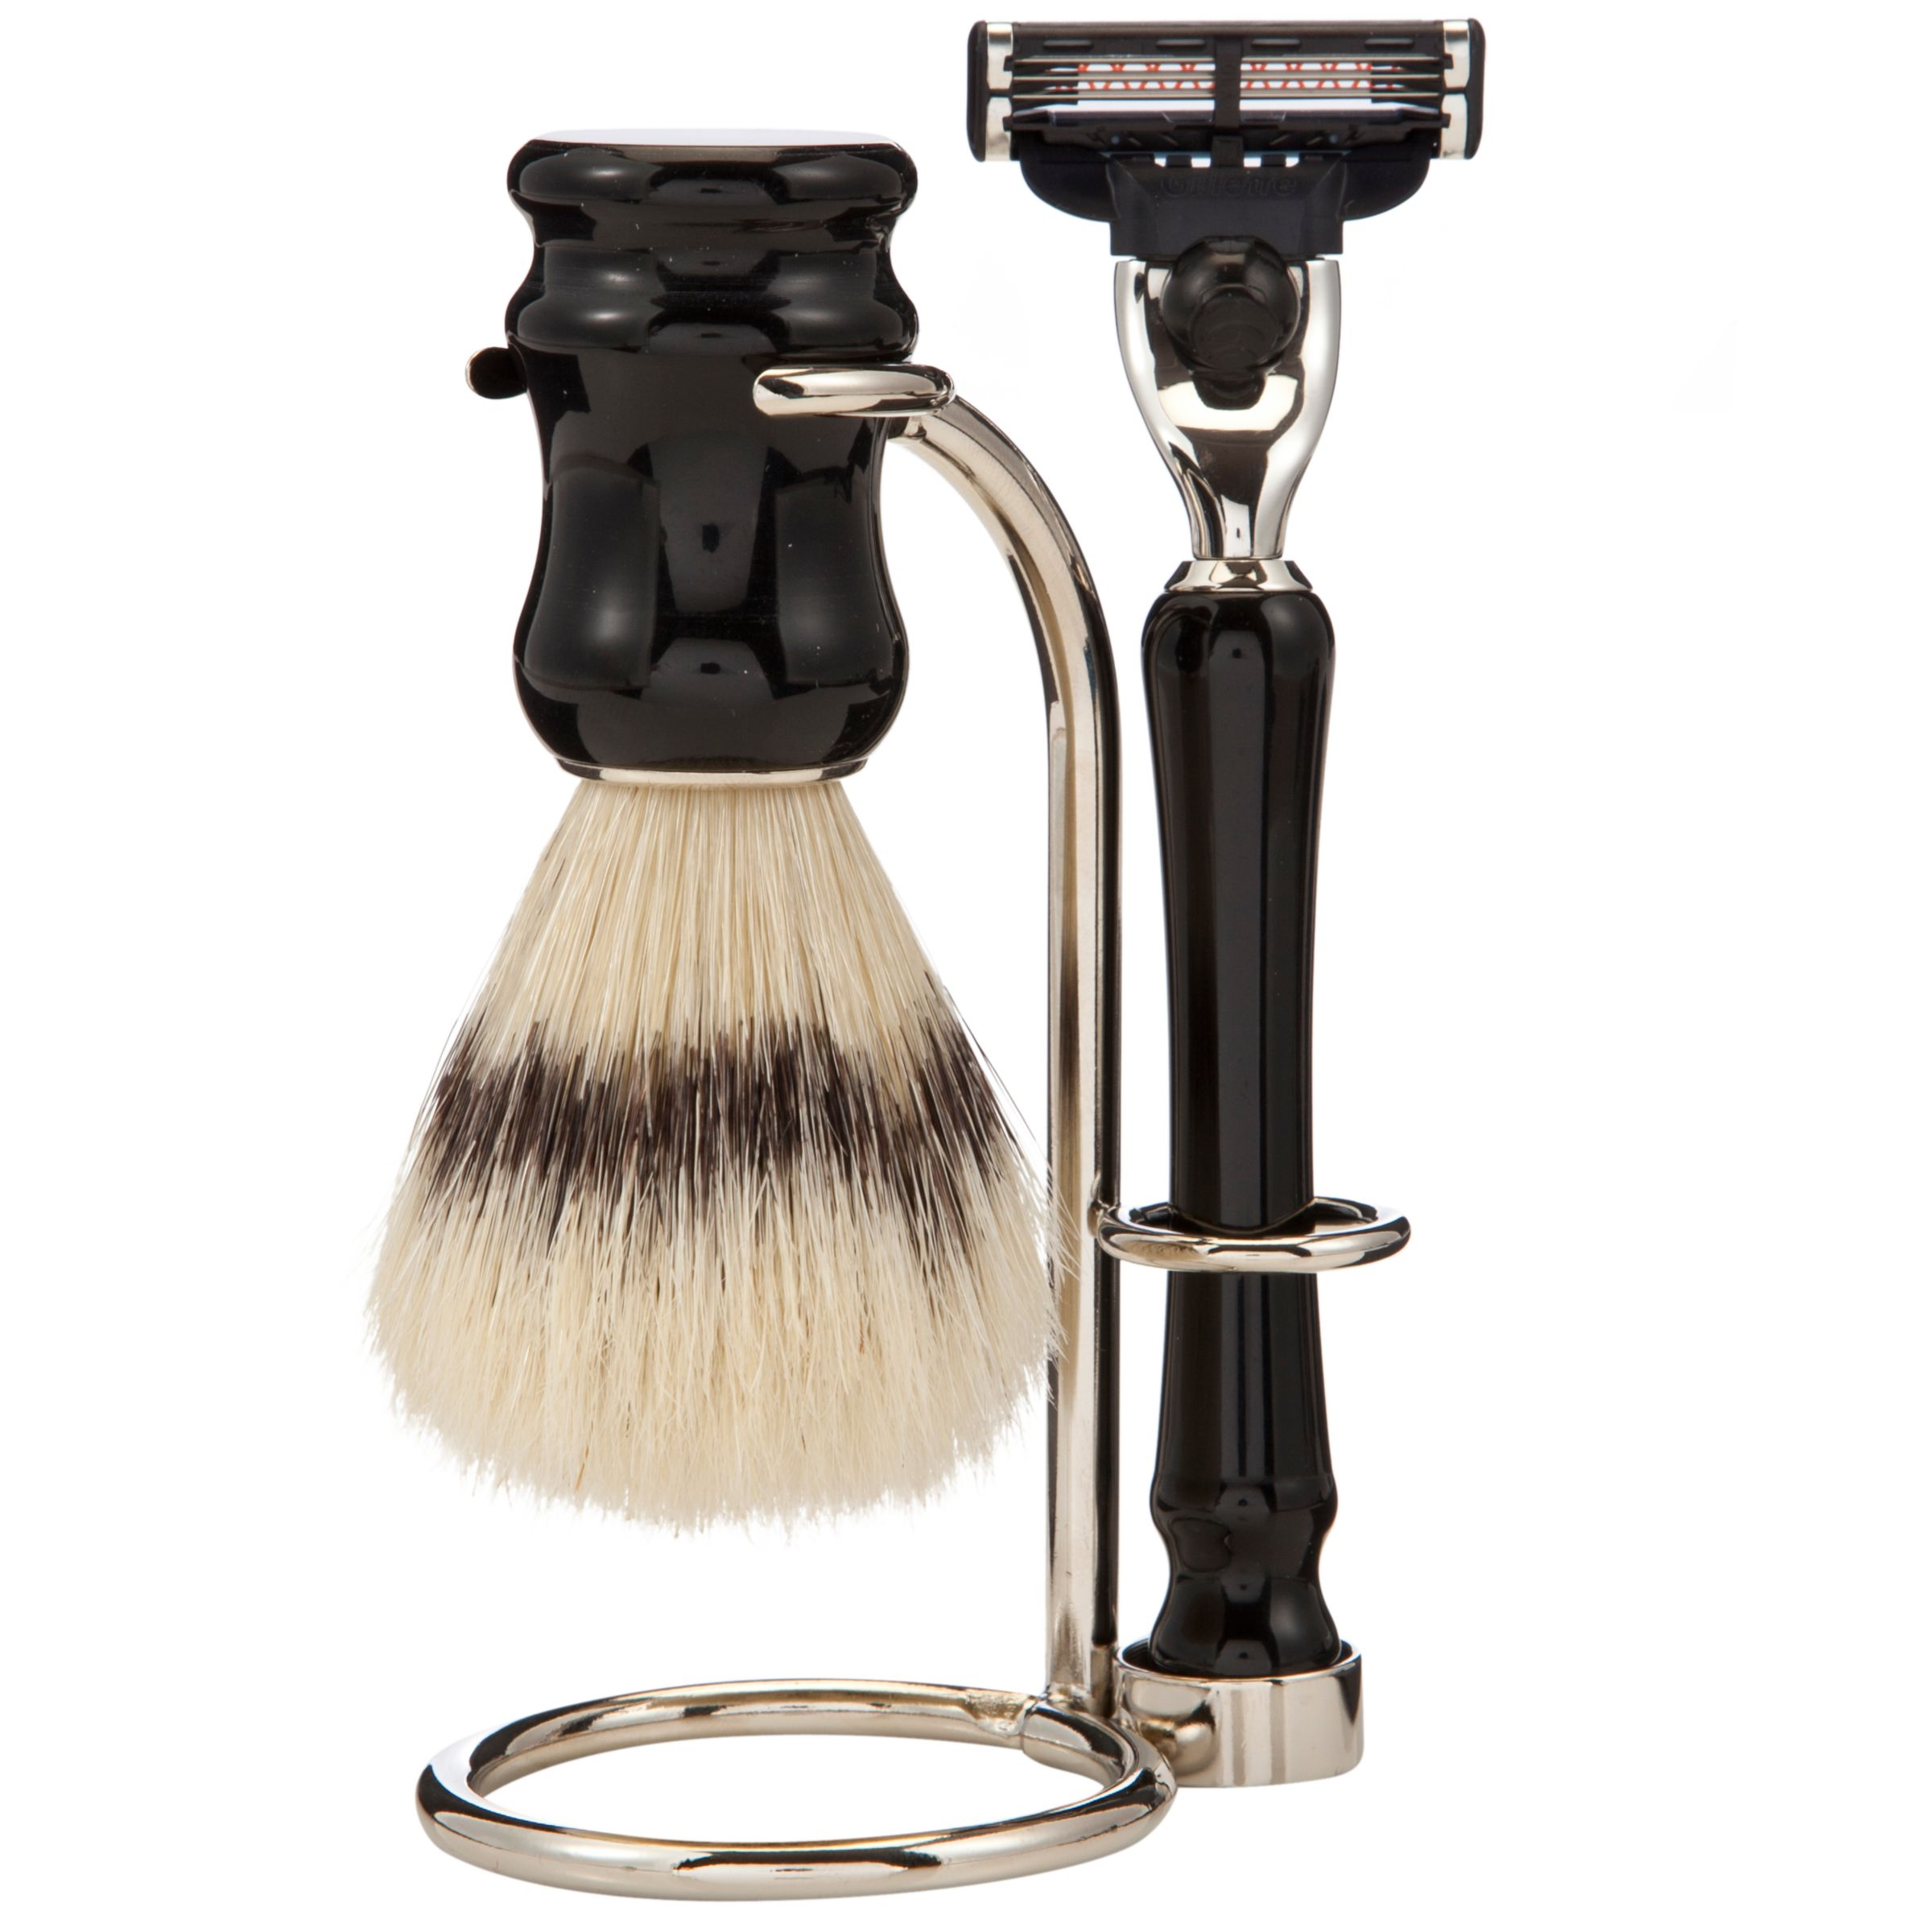 beard grooming set john lewis buy wahl grooming gift set john lewis buy wahl grooming gift set. Black Bedroom Furniture Sets. Home Design Ideas